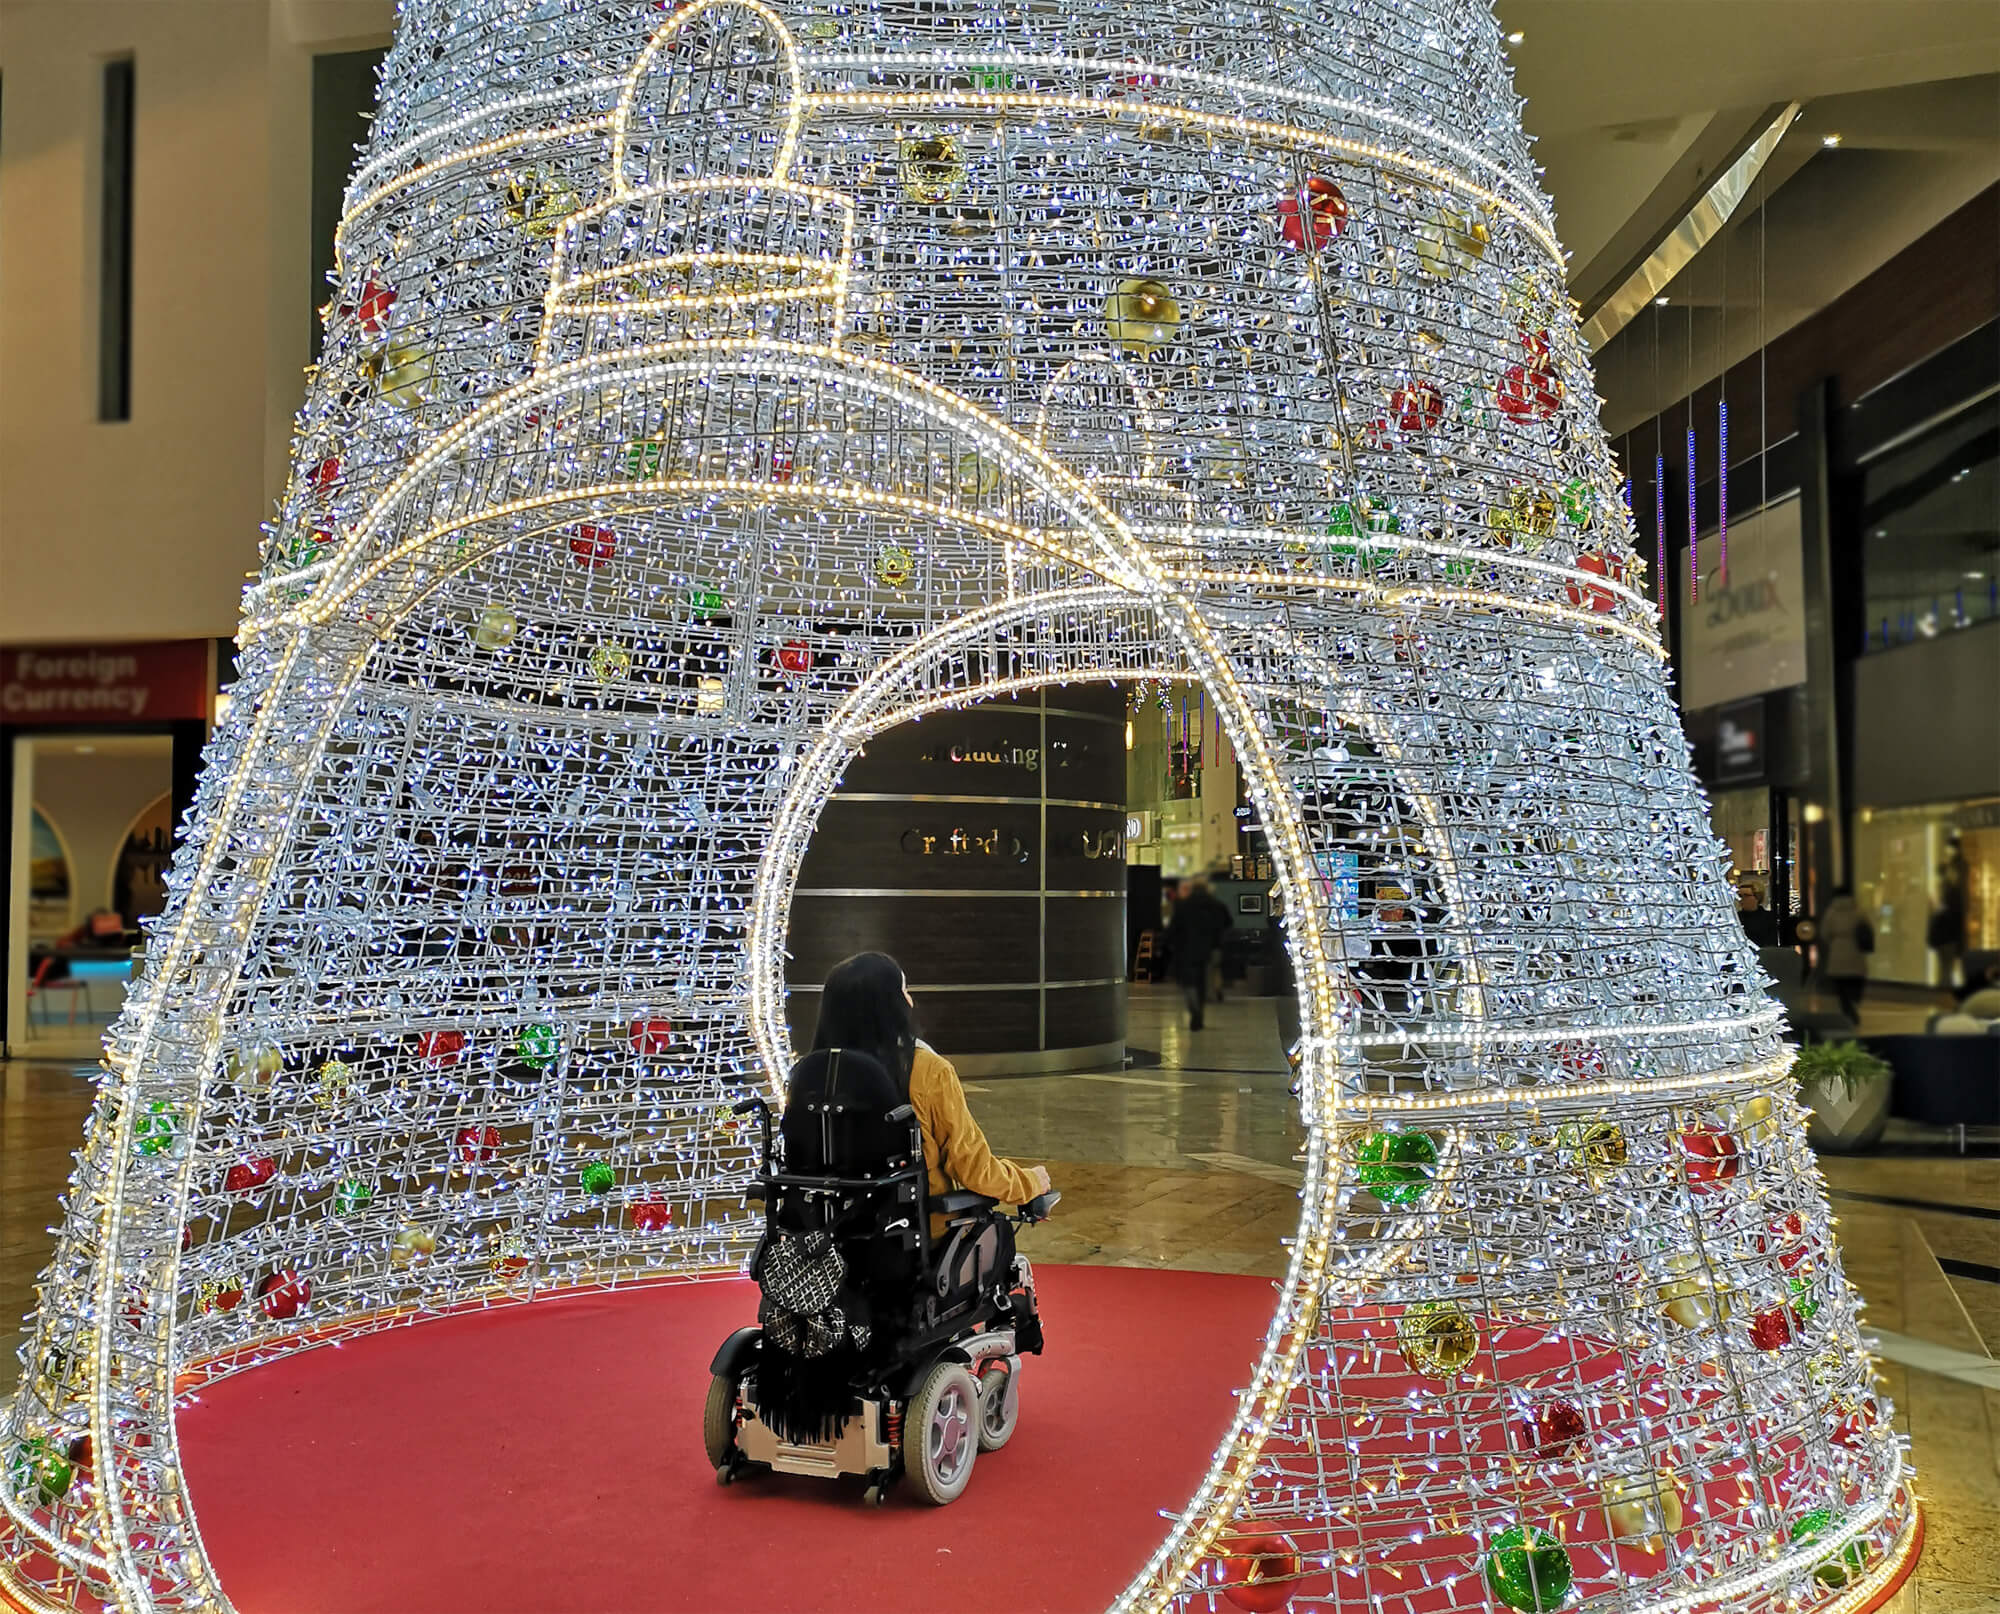 Emma in her powered wheelchair sitting inside a decorative Christmas tree and Christmas light display in Silverburn Shopping Centre.